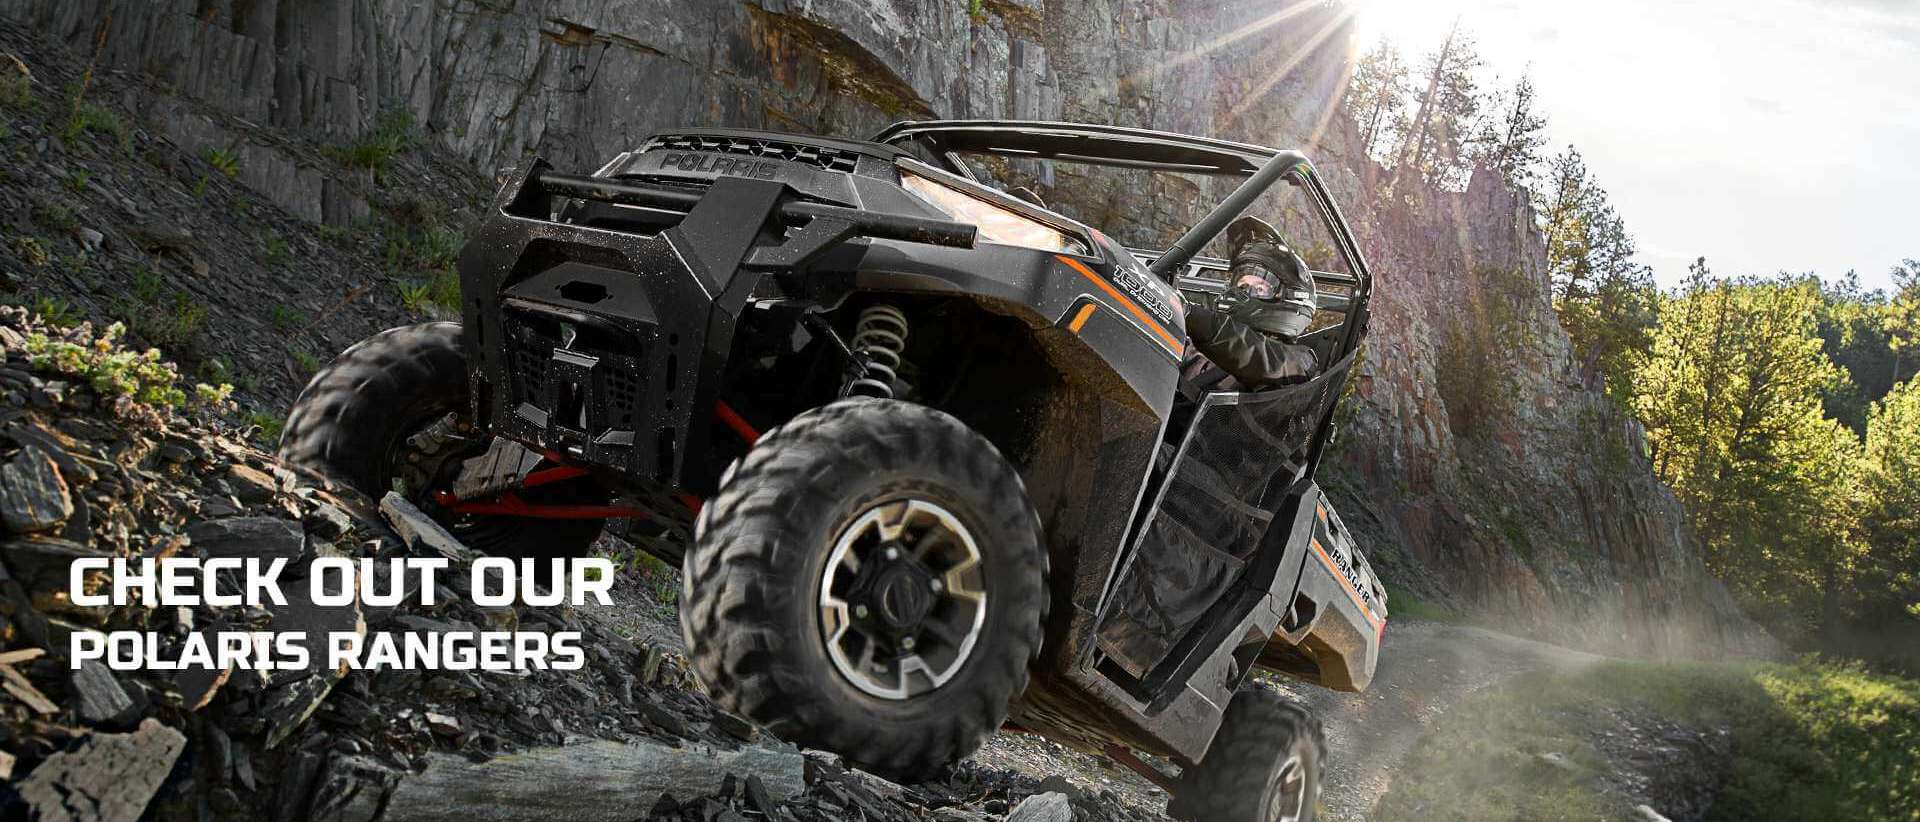 Check Out Our Polaris Rangers | A+ Power Sports